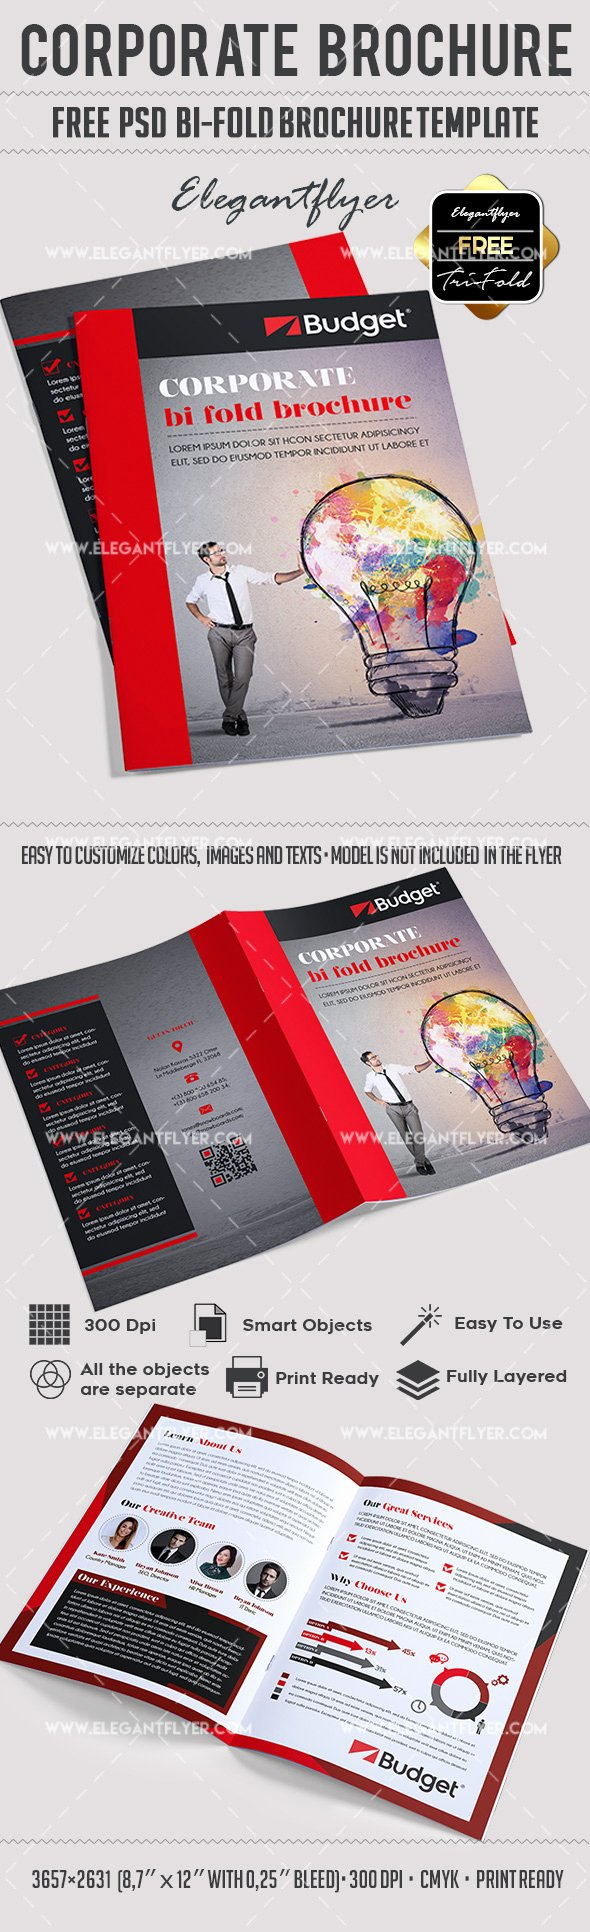 Free Bifold Brochure Template Awesome Corporate – Free Psd Bi Fold Psd Brochure Template – by